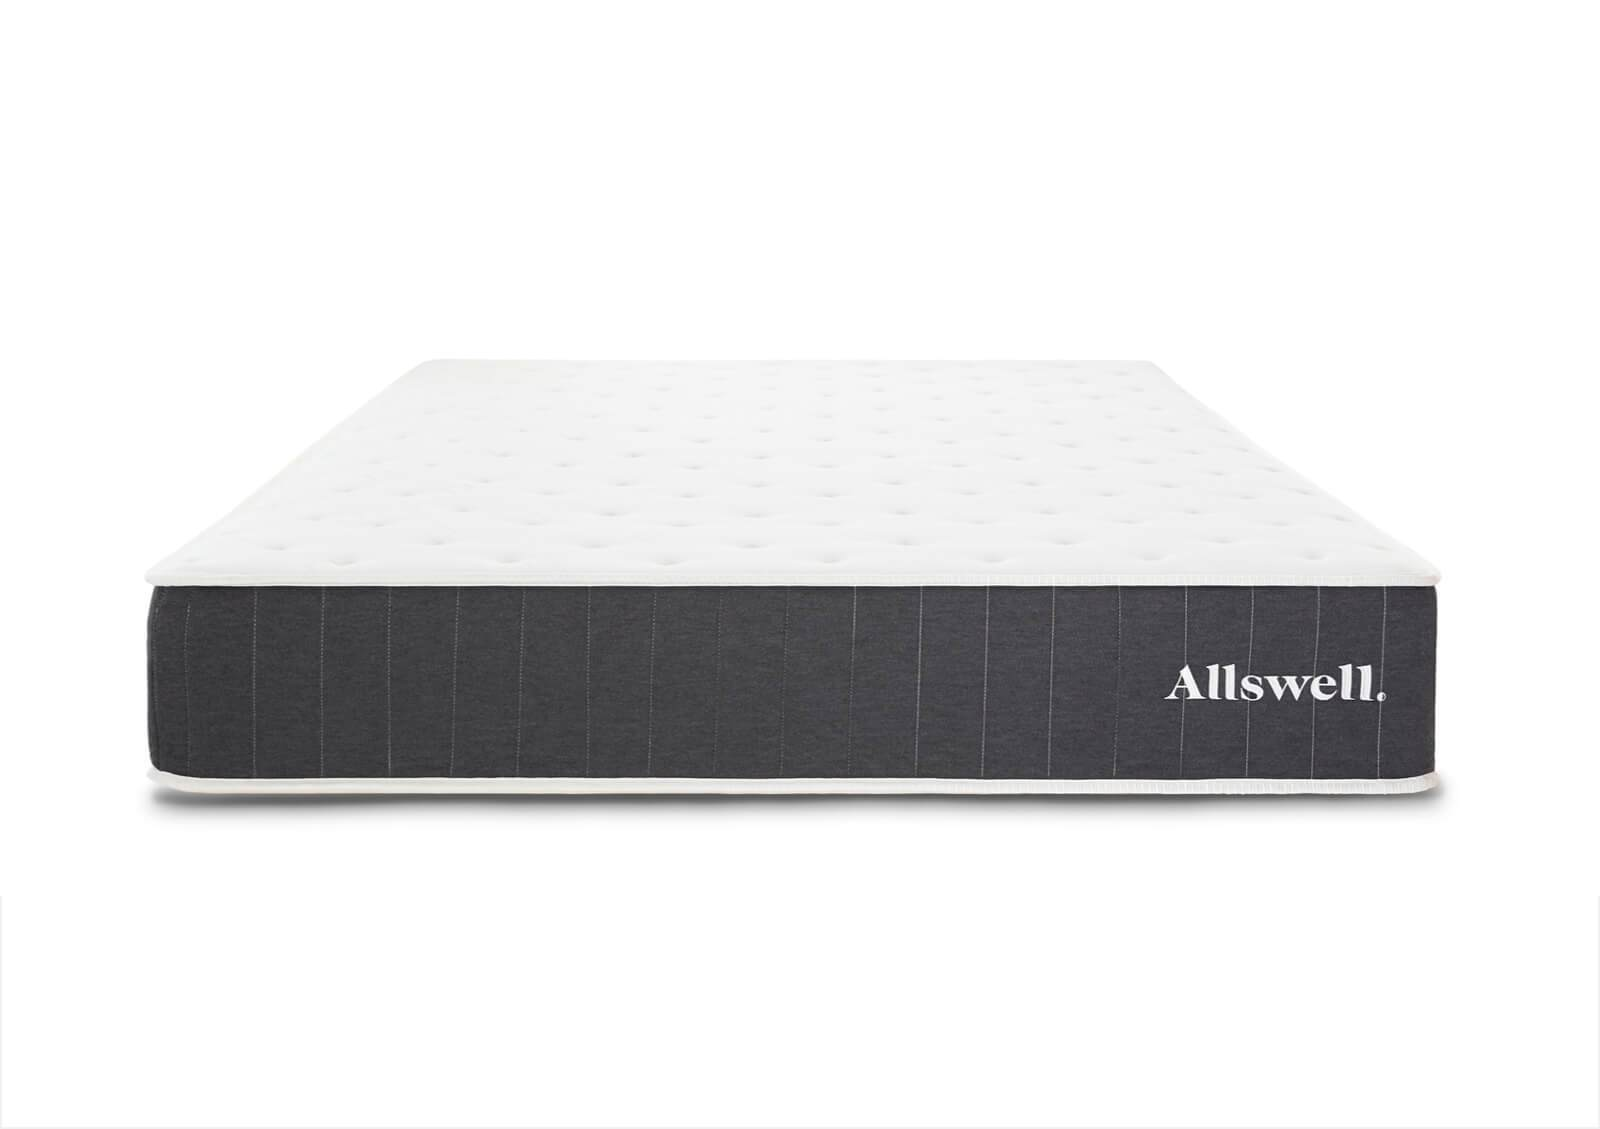 Allswell The Allswell Mattress